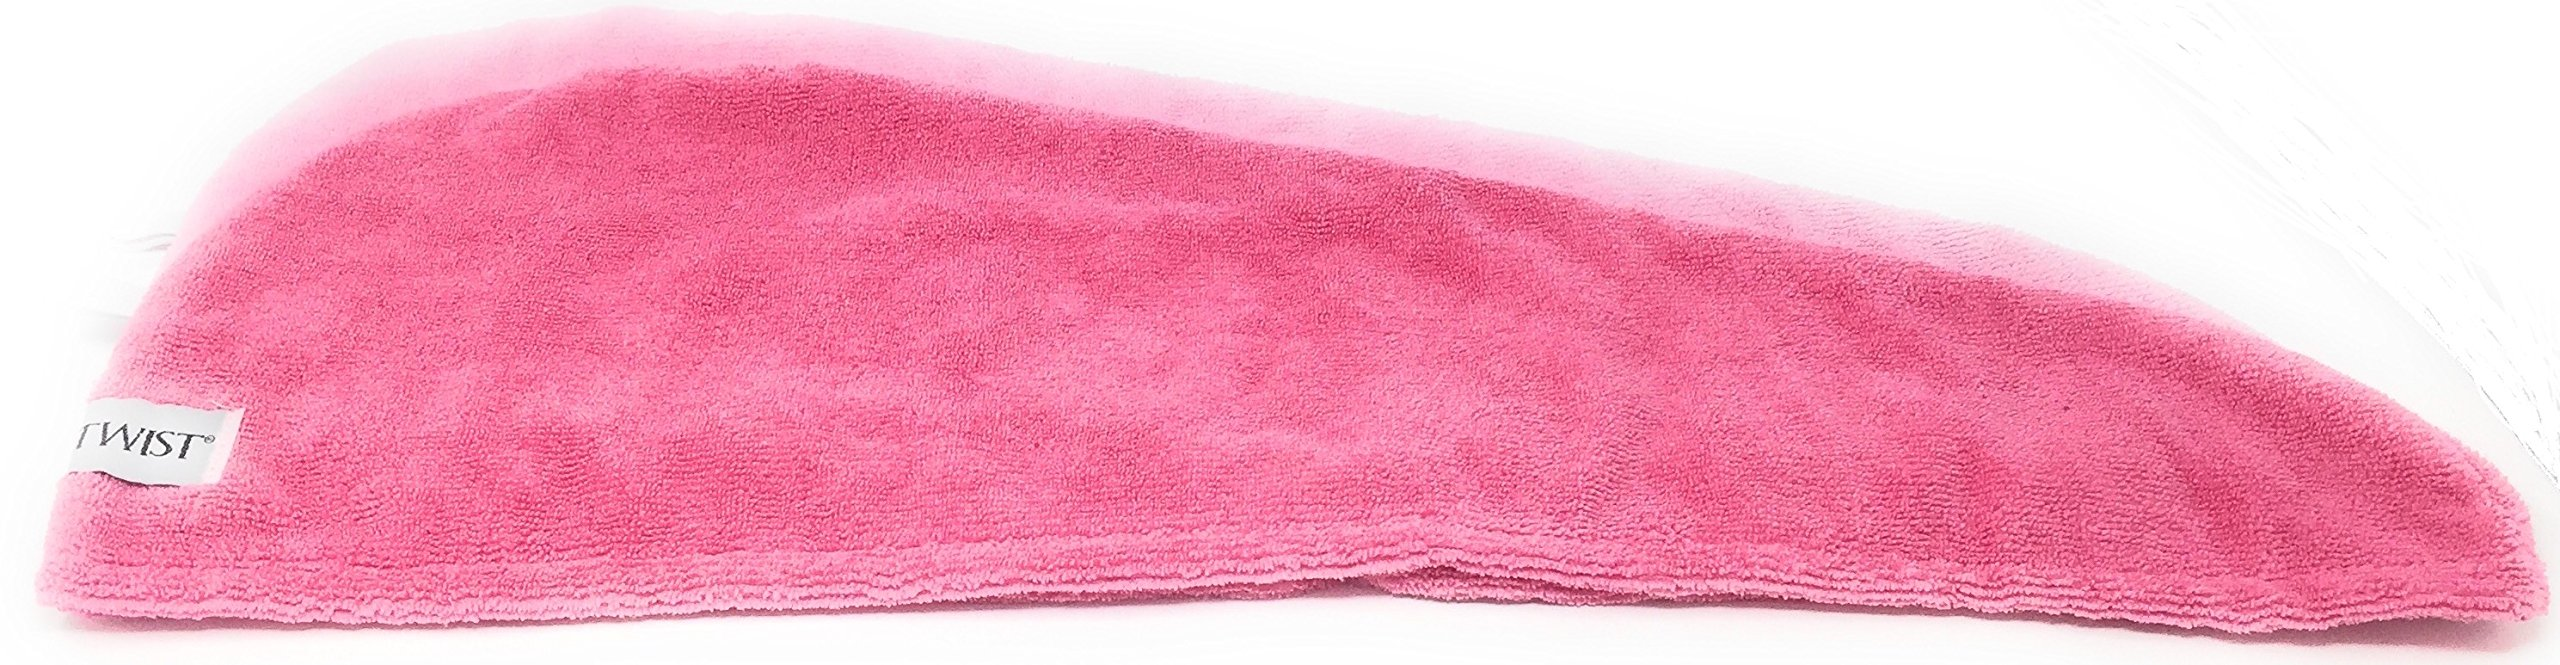 Turbie Twist 6 Pack Light and Dark Pink,Purple, Aqua Microfiber Hair towels by Turbie Twist (Image #6)